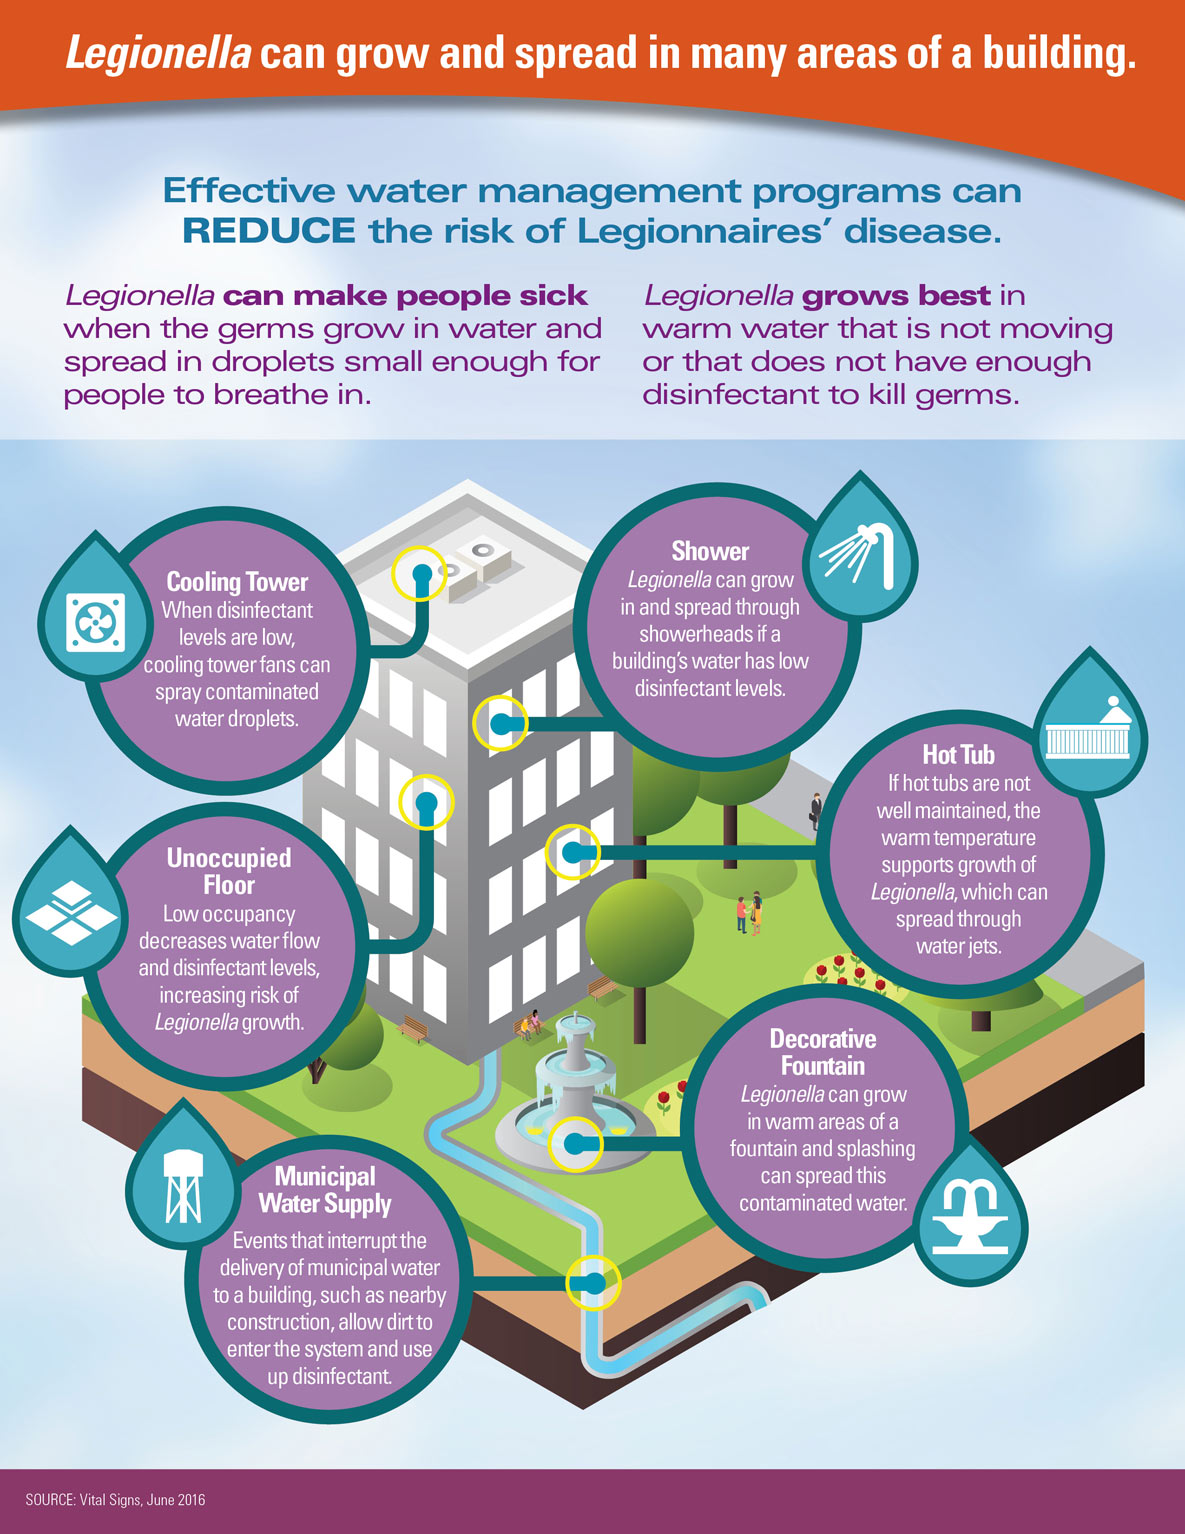 Infographic of building showing devices on different floors - Legionella can grow and spread in many areas of a building